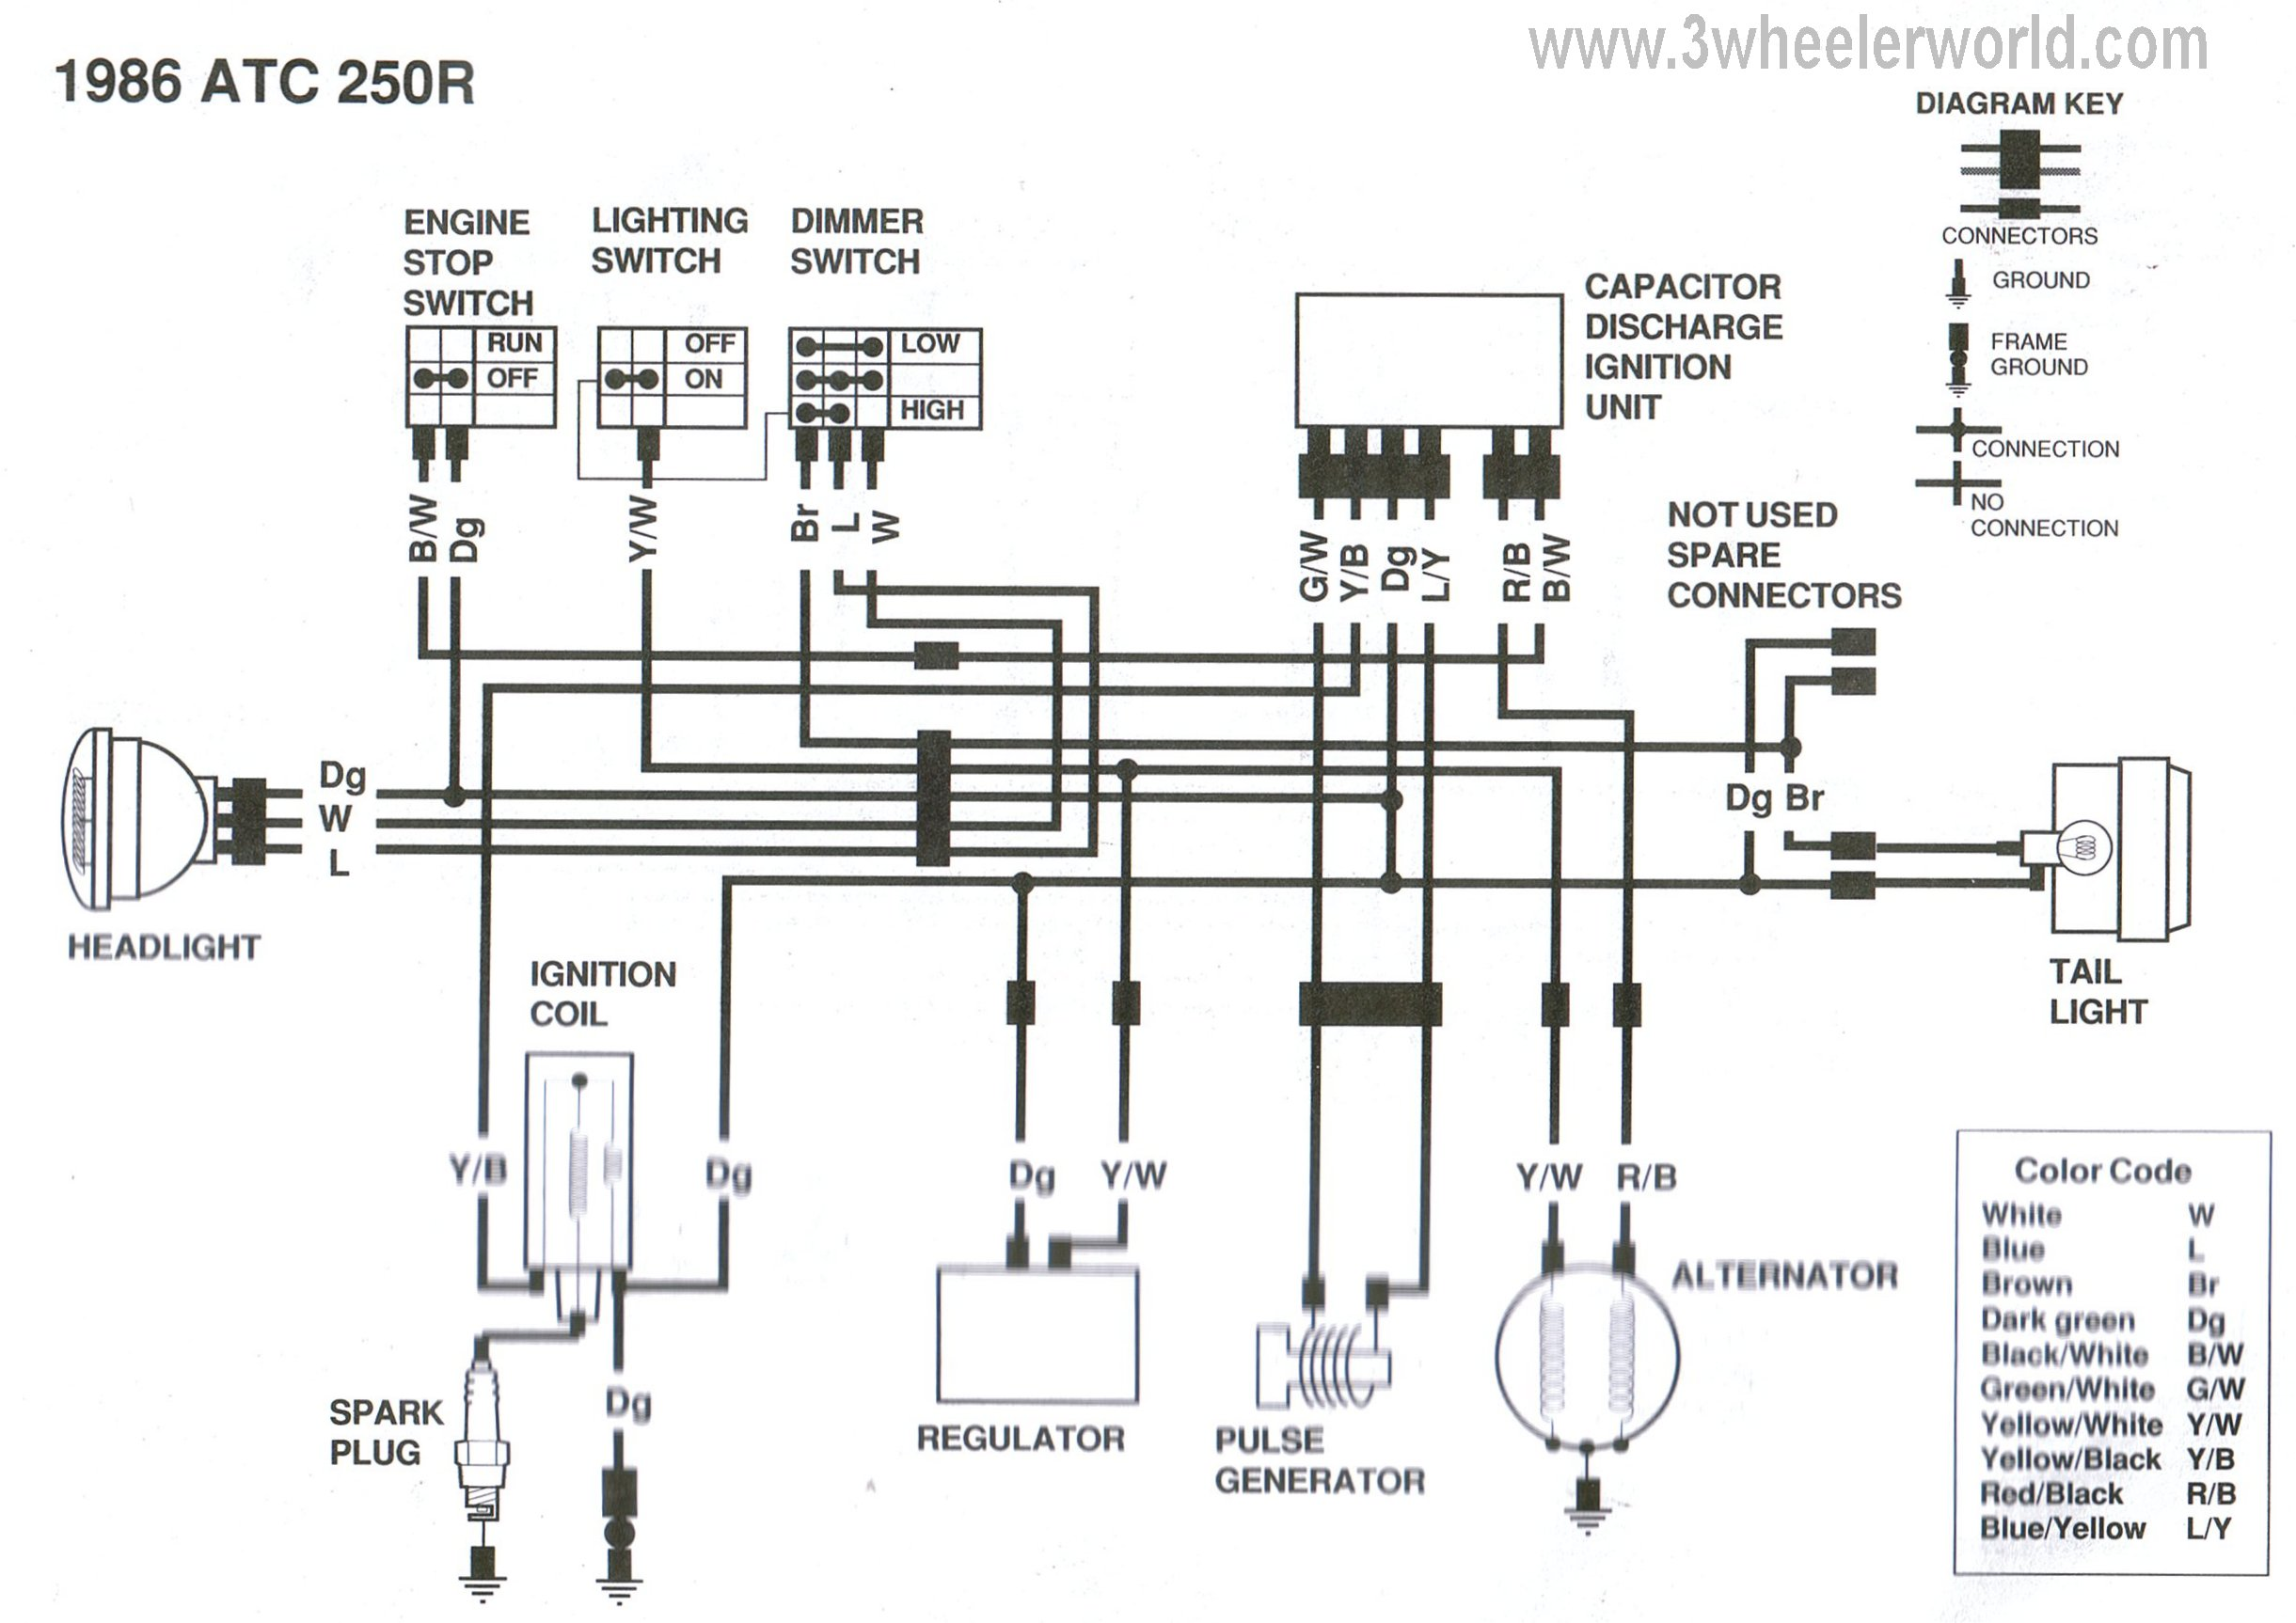 headlight wiring diagram atc70 30 wiring diagram images wiring headlight wiring upgrade diagram headlight wiring diagram [ 2441 x 1726 Pixel ]